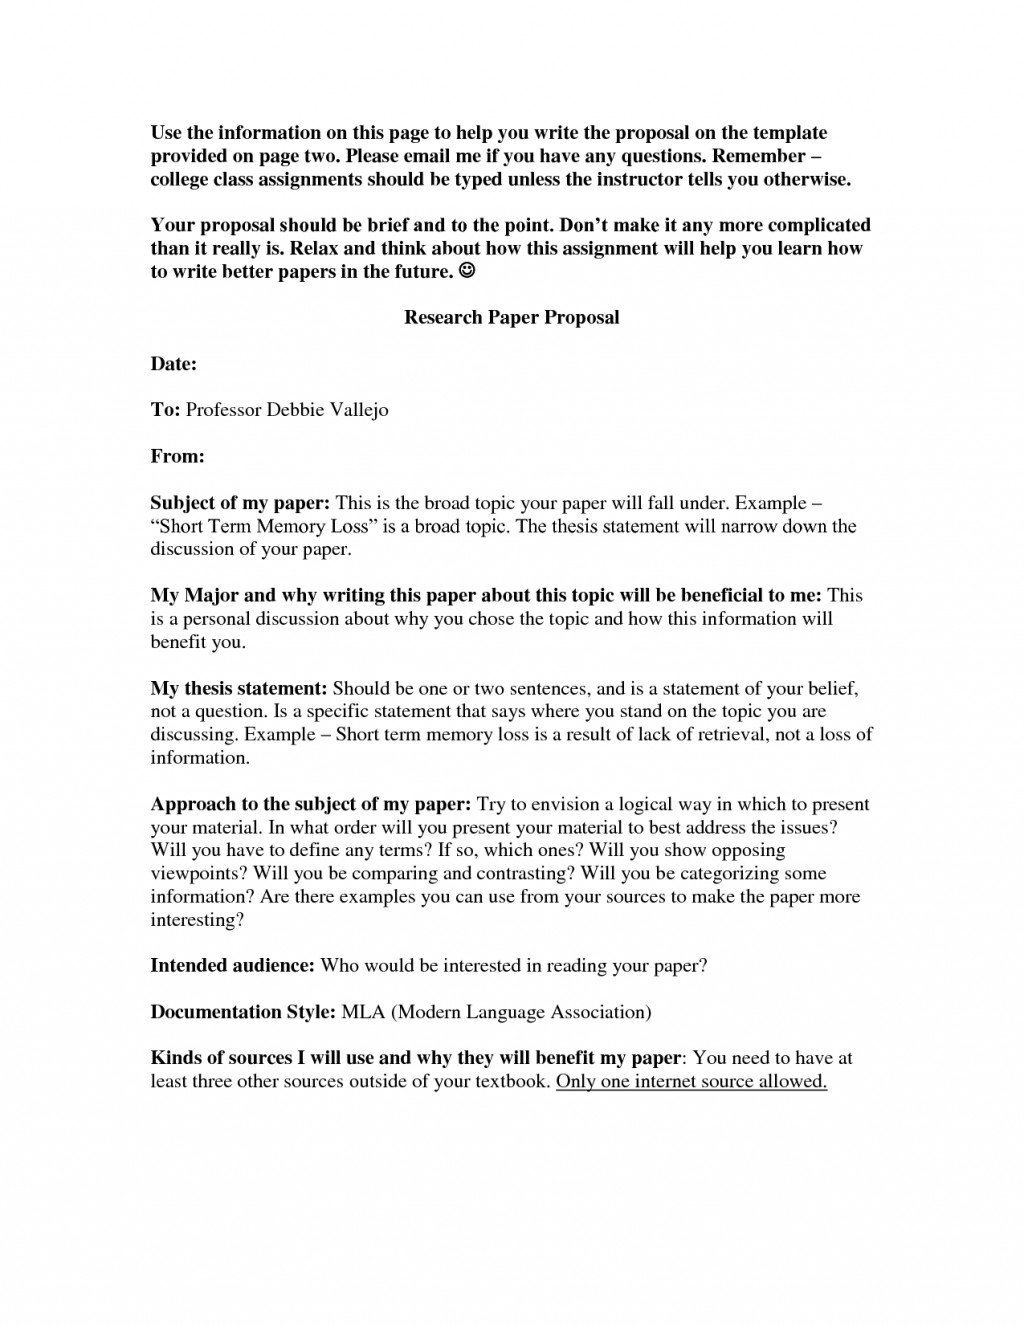 007 Proposal Essay Angel Beats 614610 Stunning Examples Free Thesis Example Solution Large